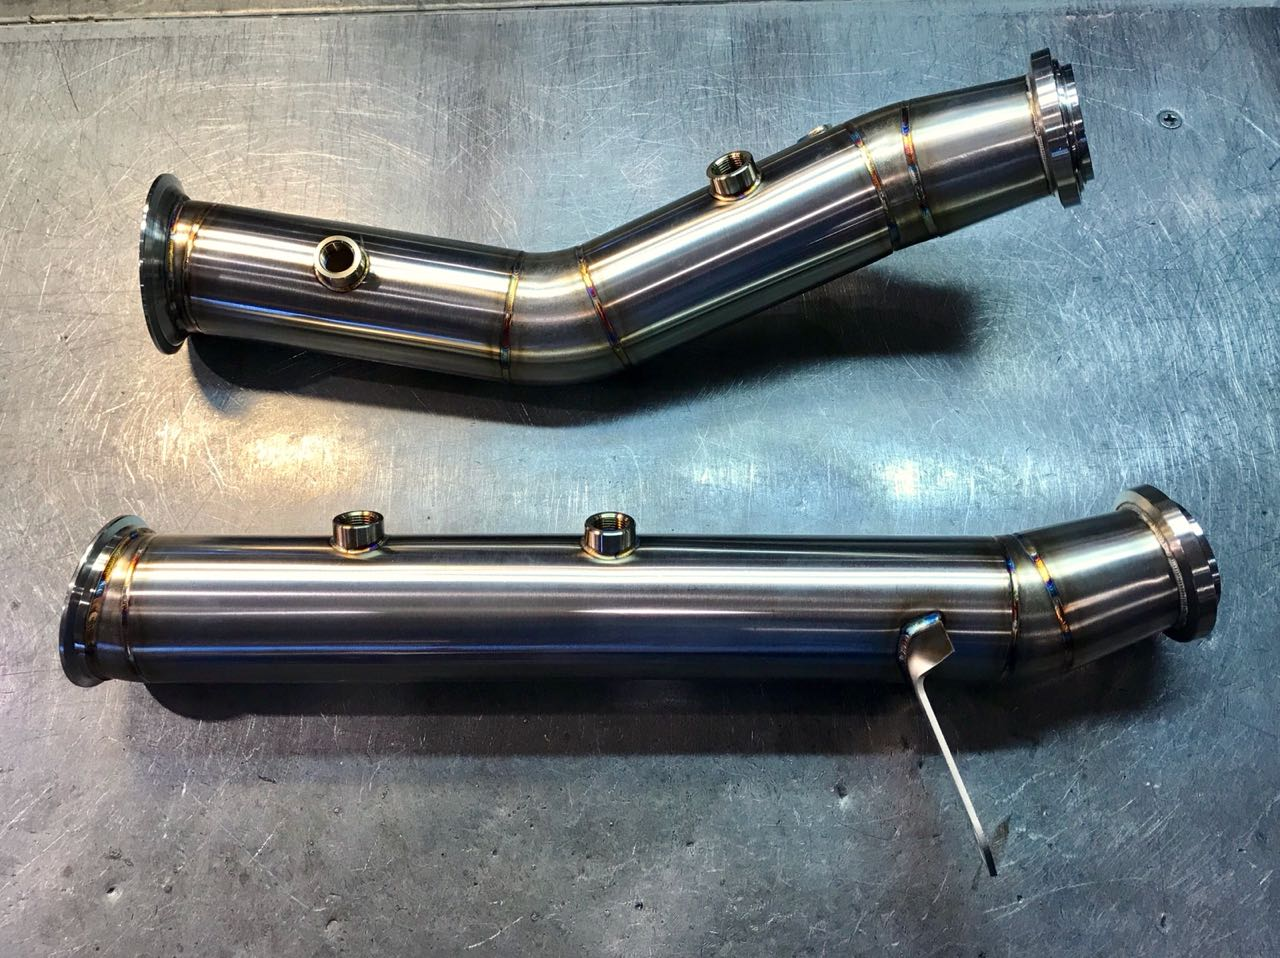 W205 C400 C450 C43 Downpipe kit - Page 2 - MBWorld org Forums